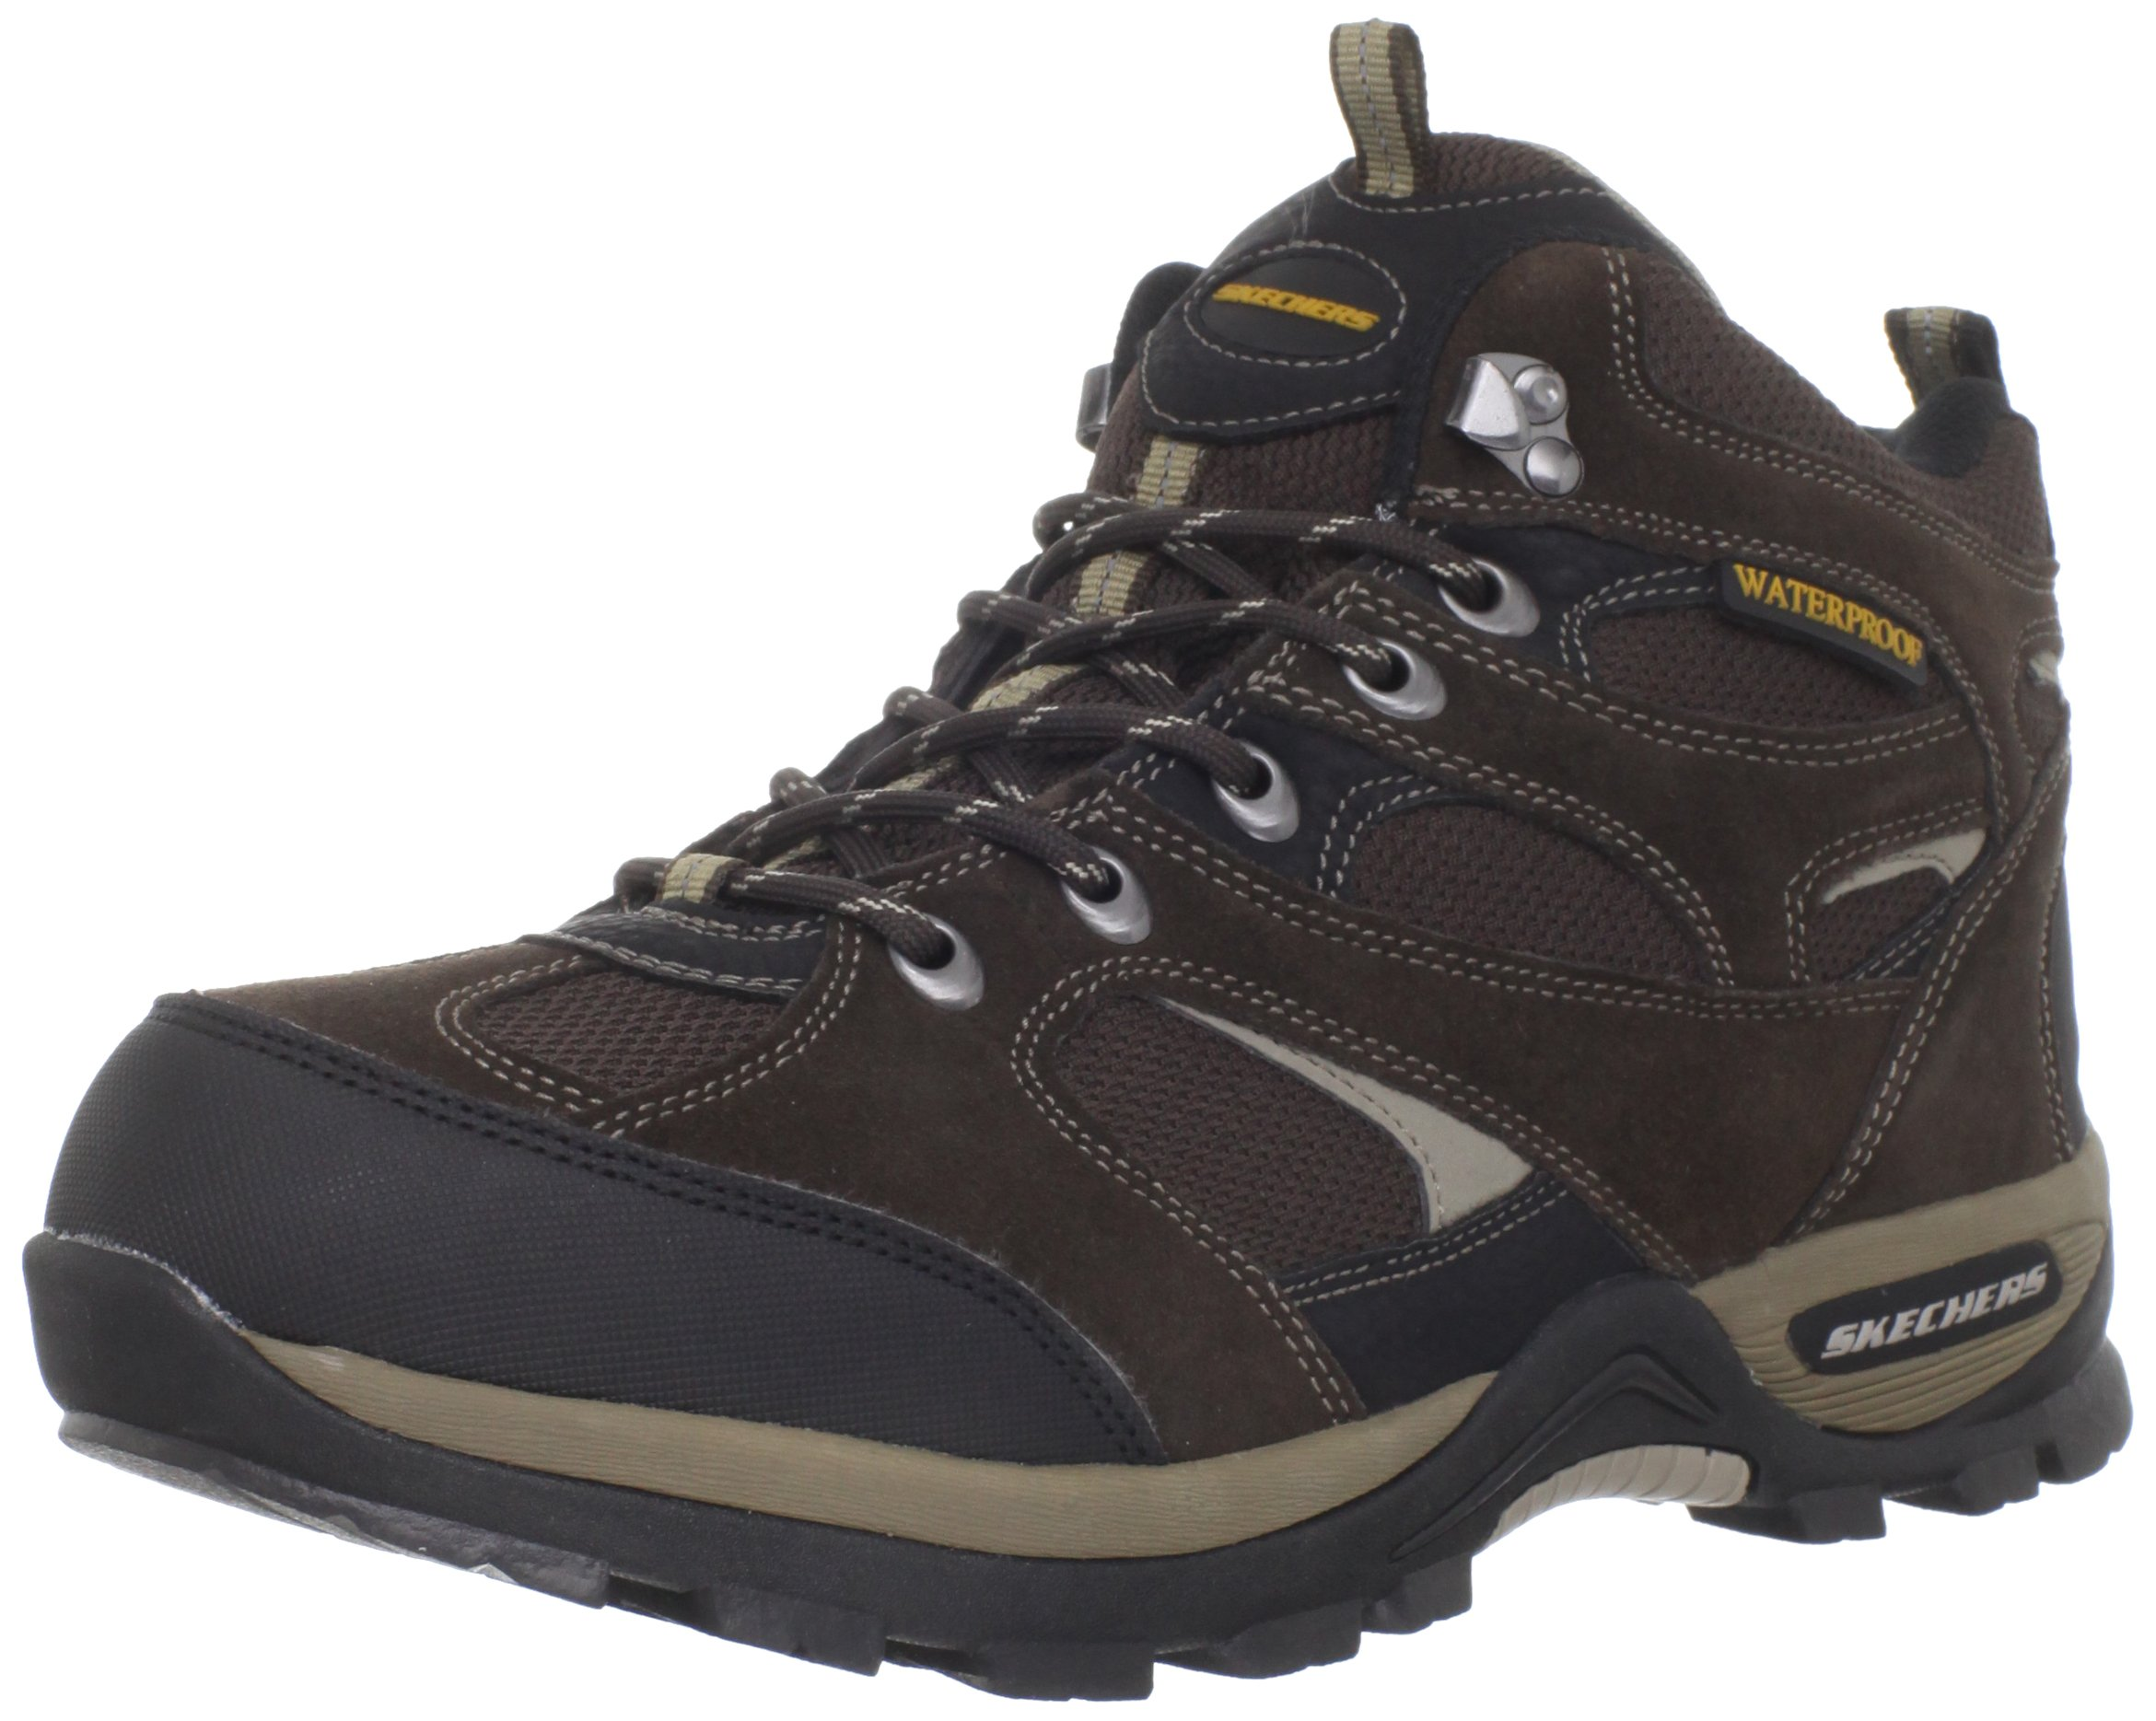 Skechers USA Men's Bomags Calder Lace-up Boot,Brown,9 M US